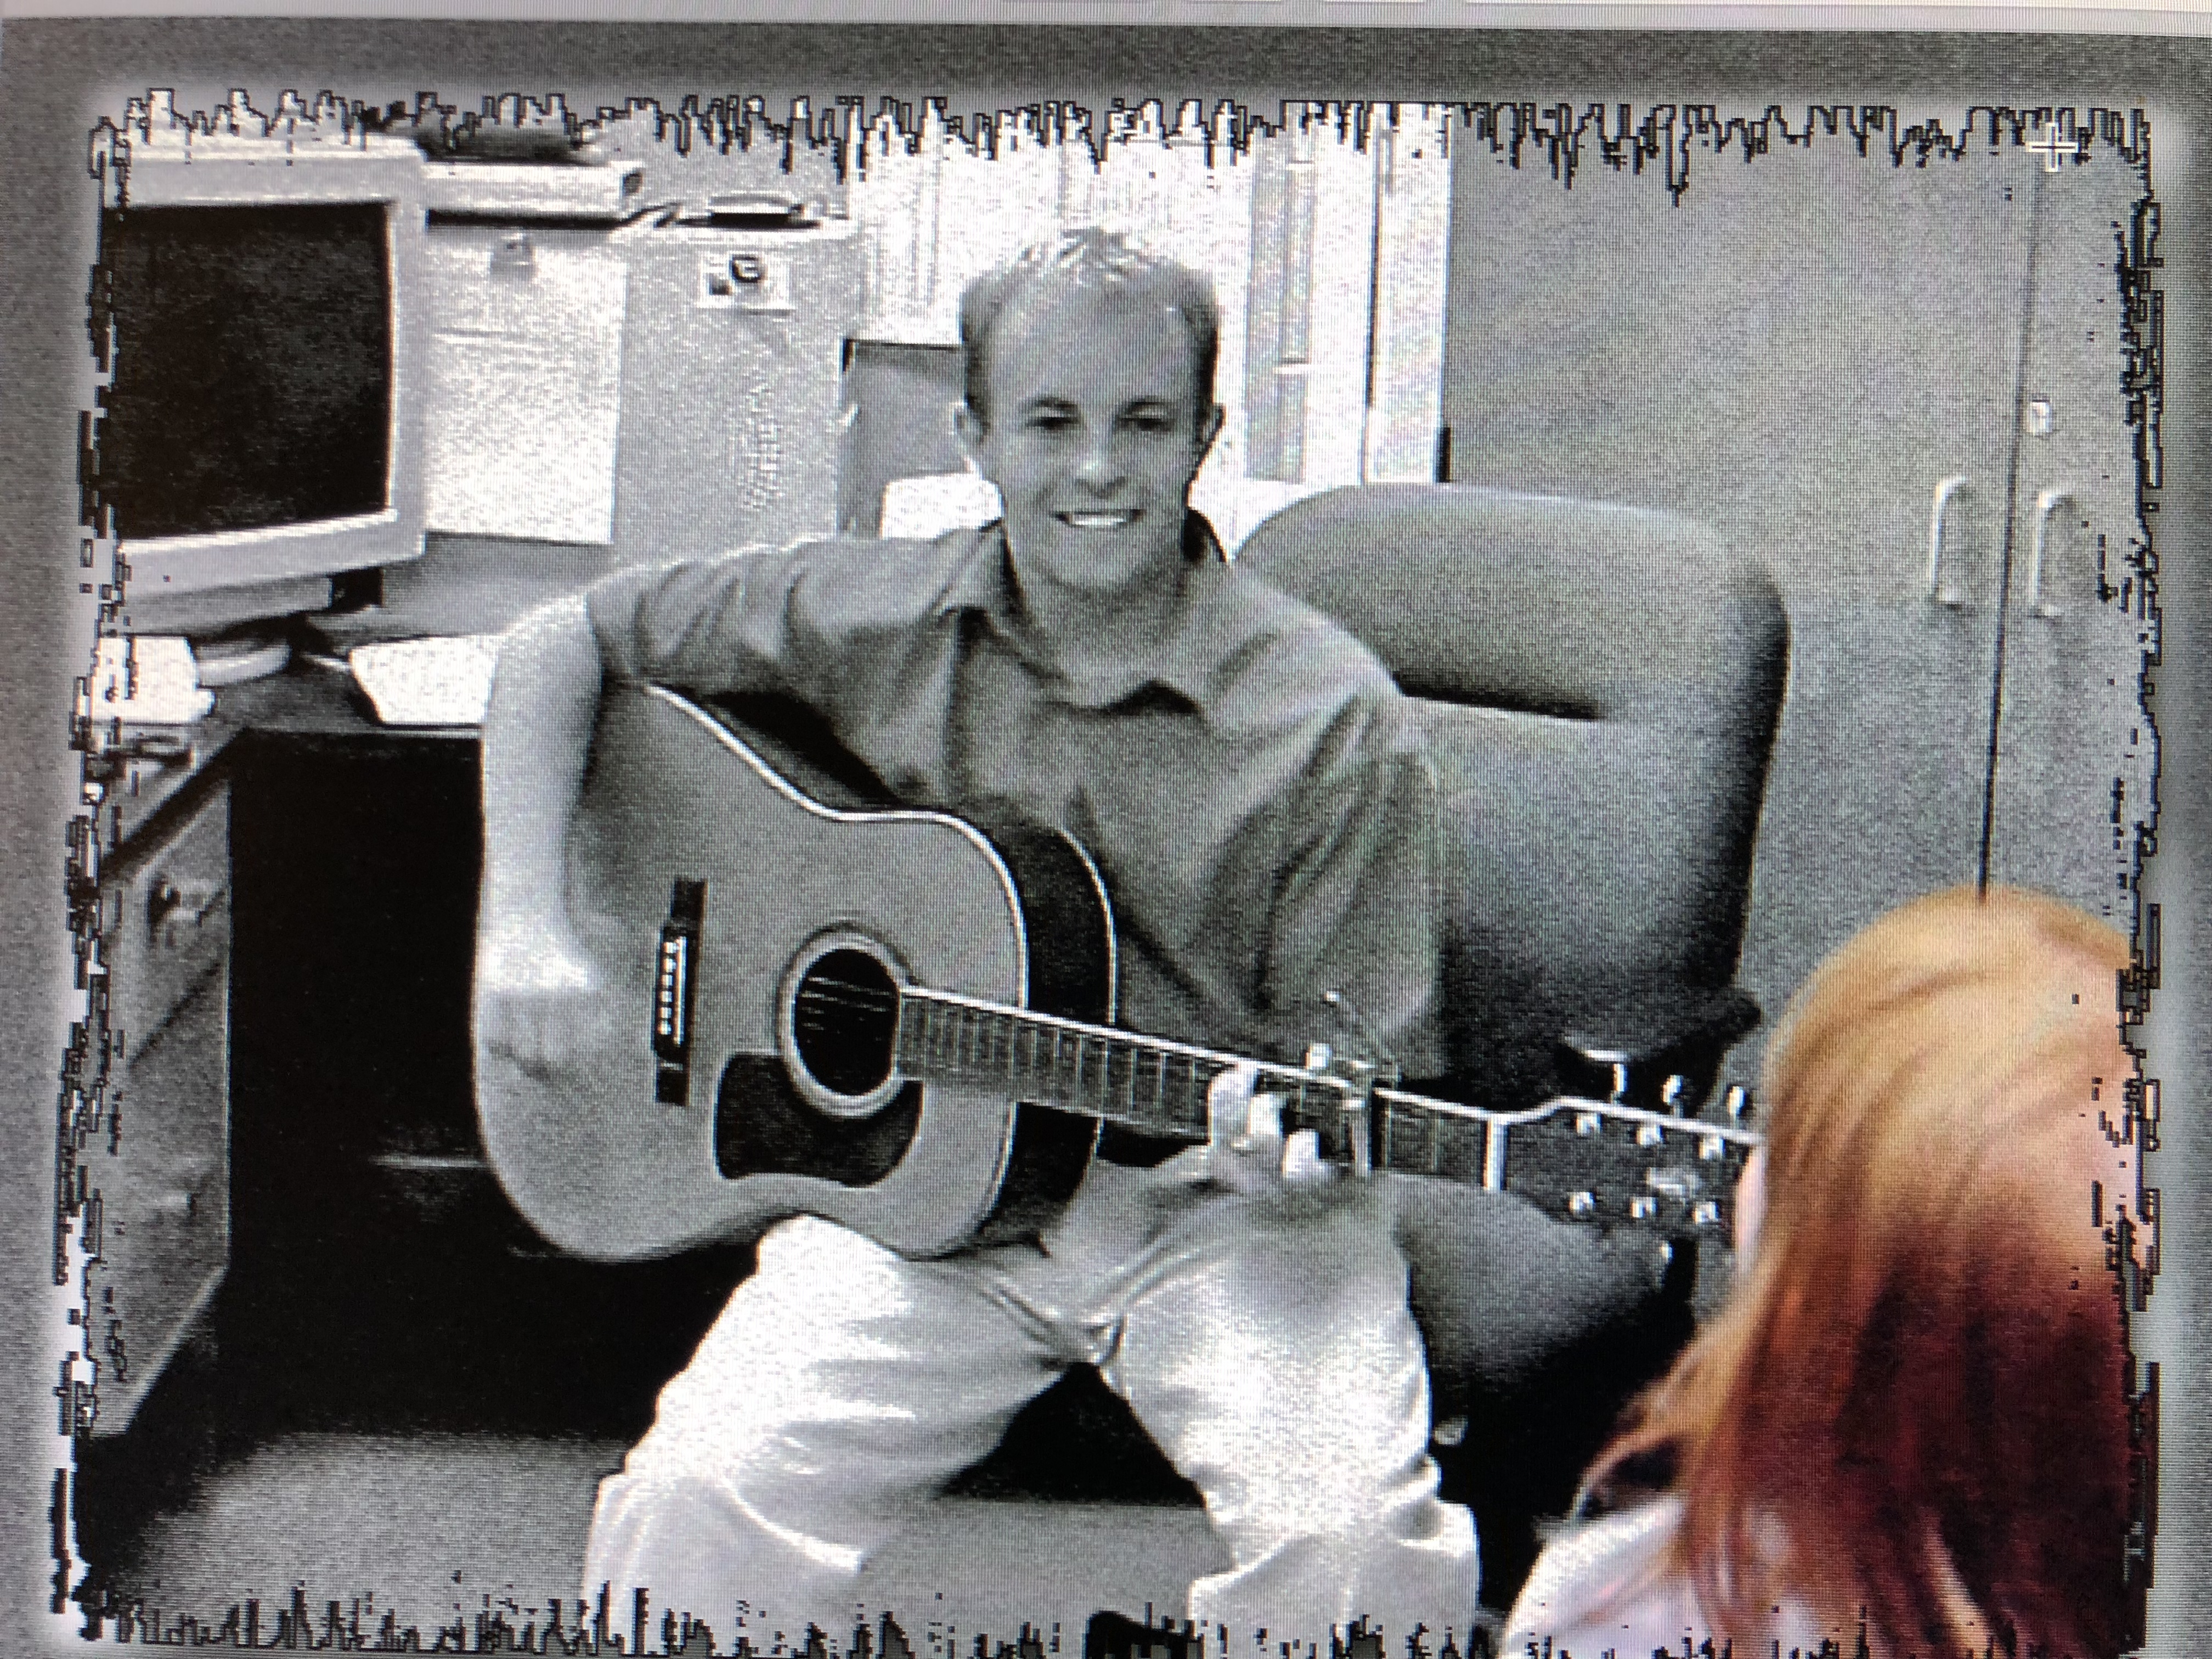 Daniel as a first year teacher playing guitar for students.